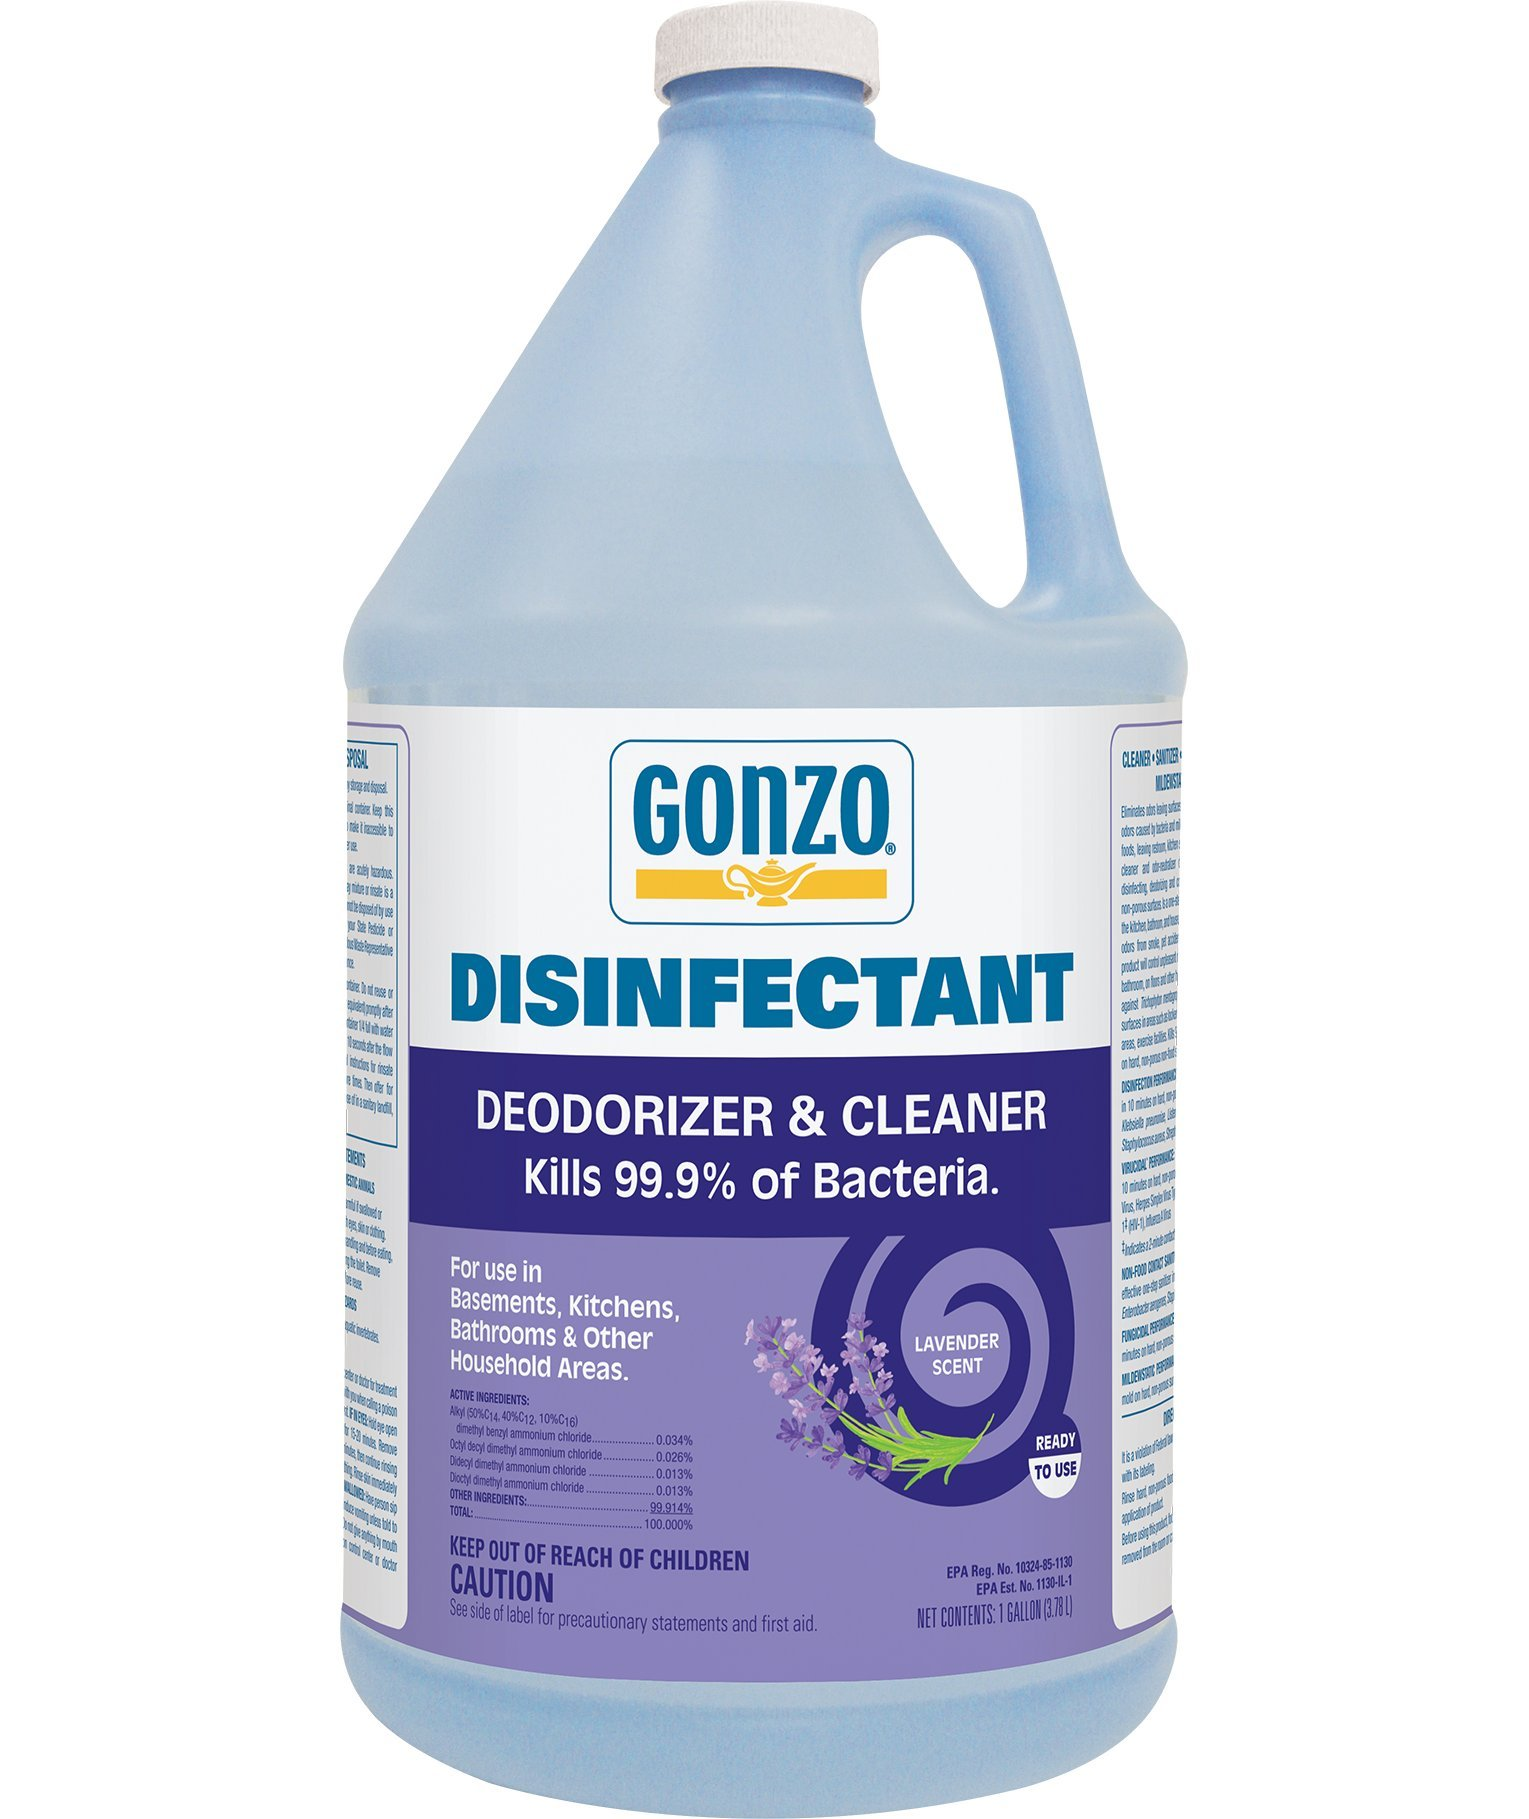 Gonzo Liquid Disinfectant Deodorizer and Cleaner - 1 Gallon - Lavender Scent - Kill Germs For Pet Area Smoke Kitchen Musty Air Vomit Paint Disinfect Deodorize Clean and Sanitize